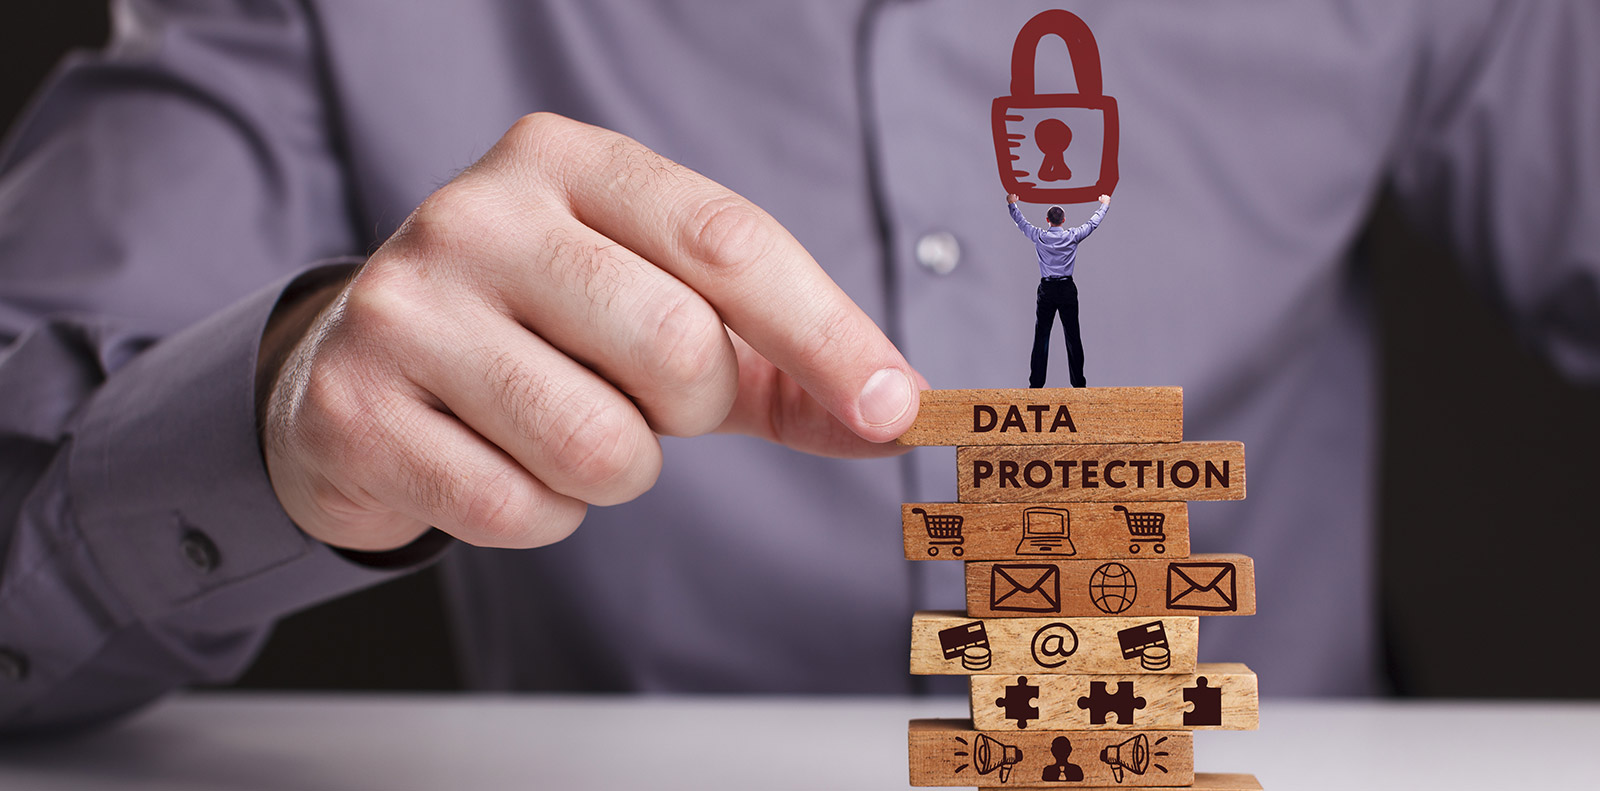 UK businesses act to ensure GDPR compliance